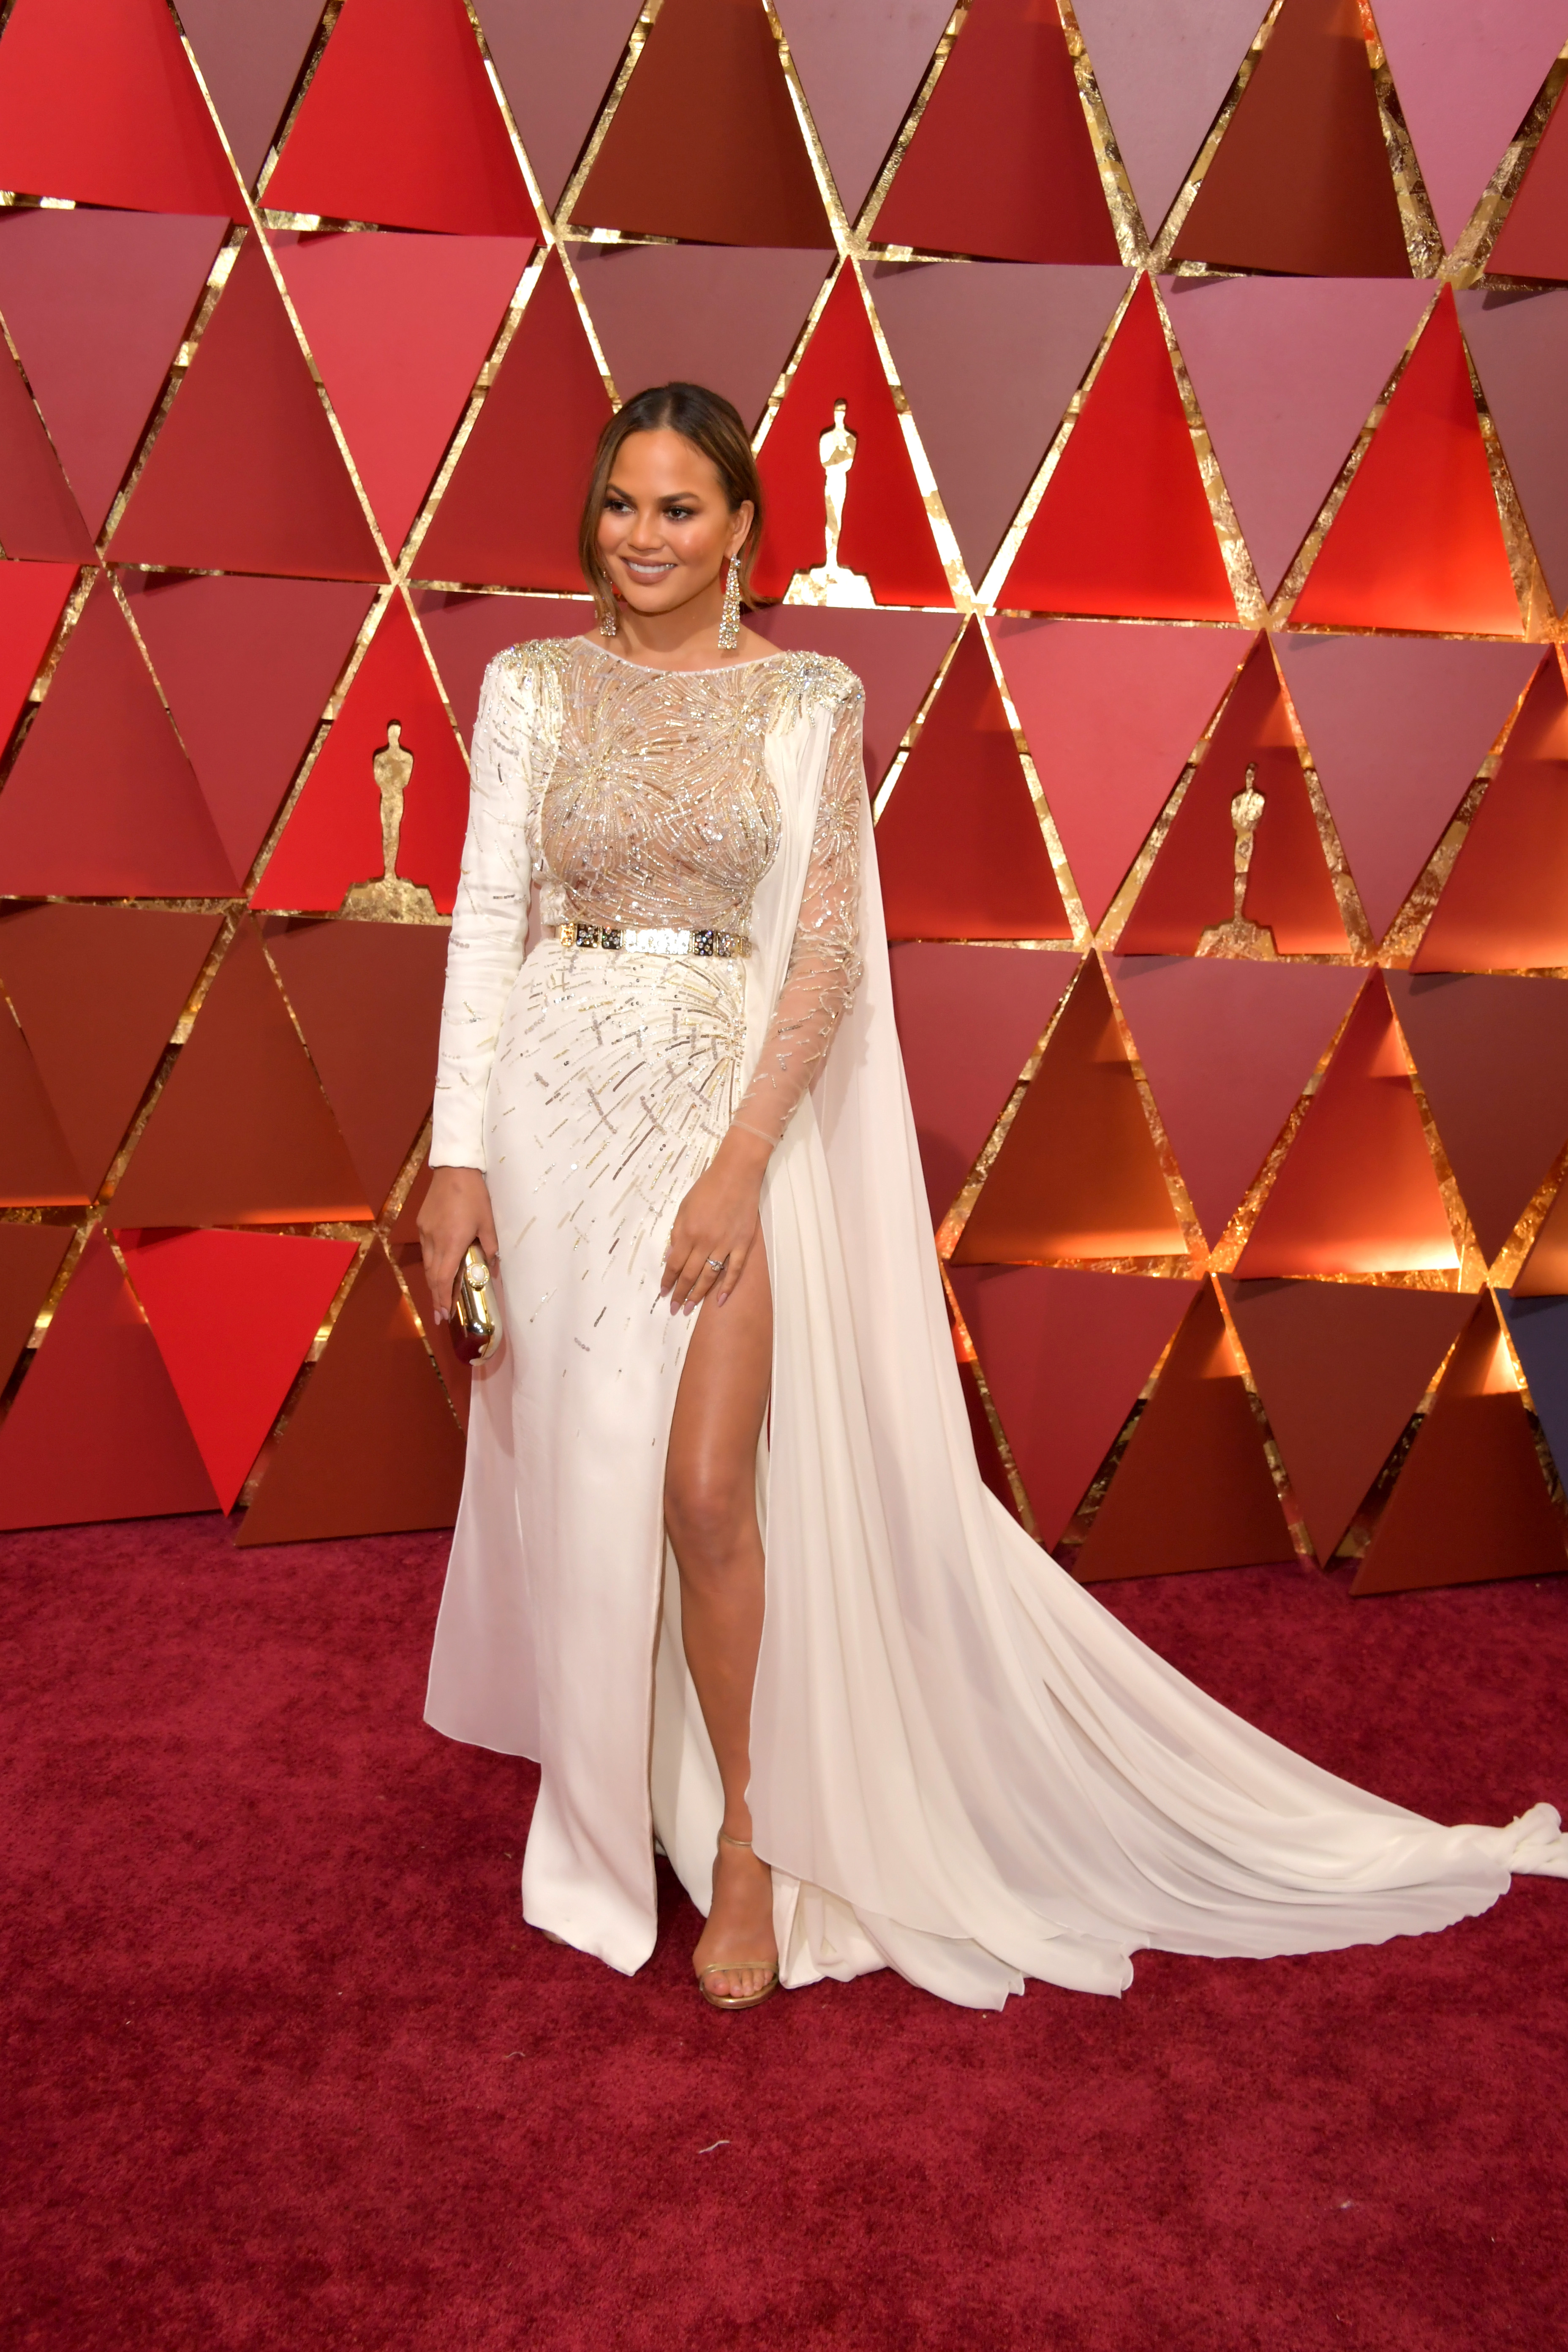 HOLLYWOOD, CA - FEBRUARY 26: Model Chrissy Teigen attends the 89th Annual Academy Awards at Hollywood & Highland Center on February 26, 2017 in Hollywood, California. (Photo by Lester Cohen/WireImage)